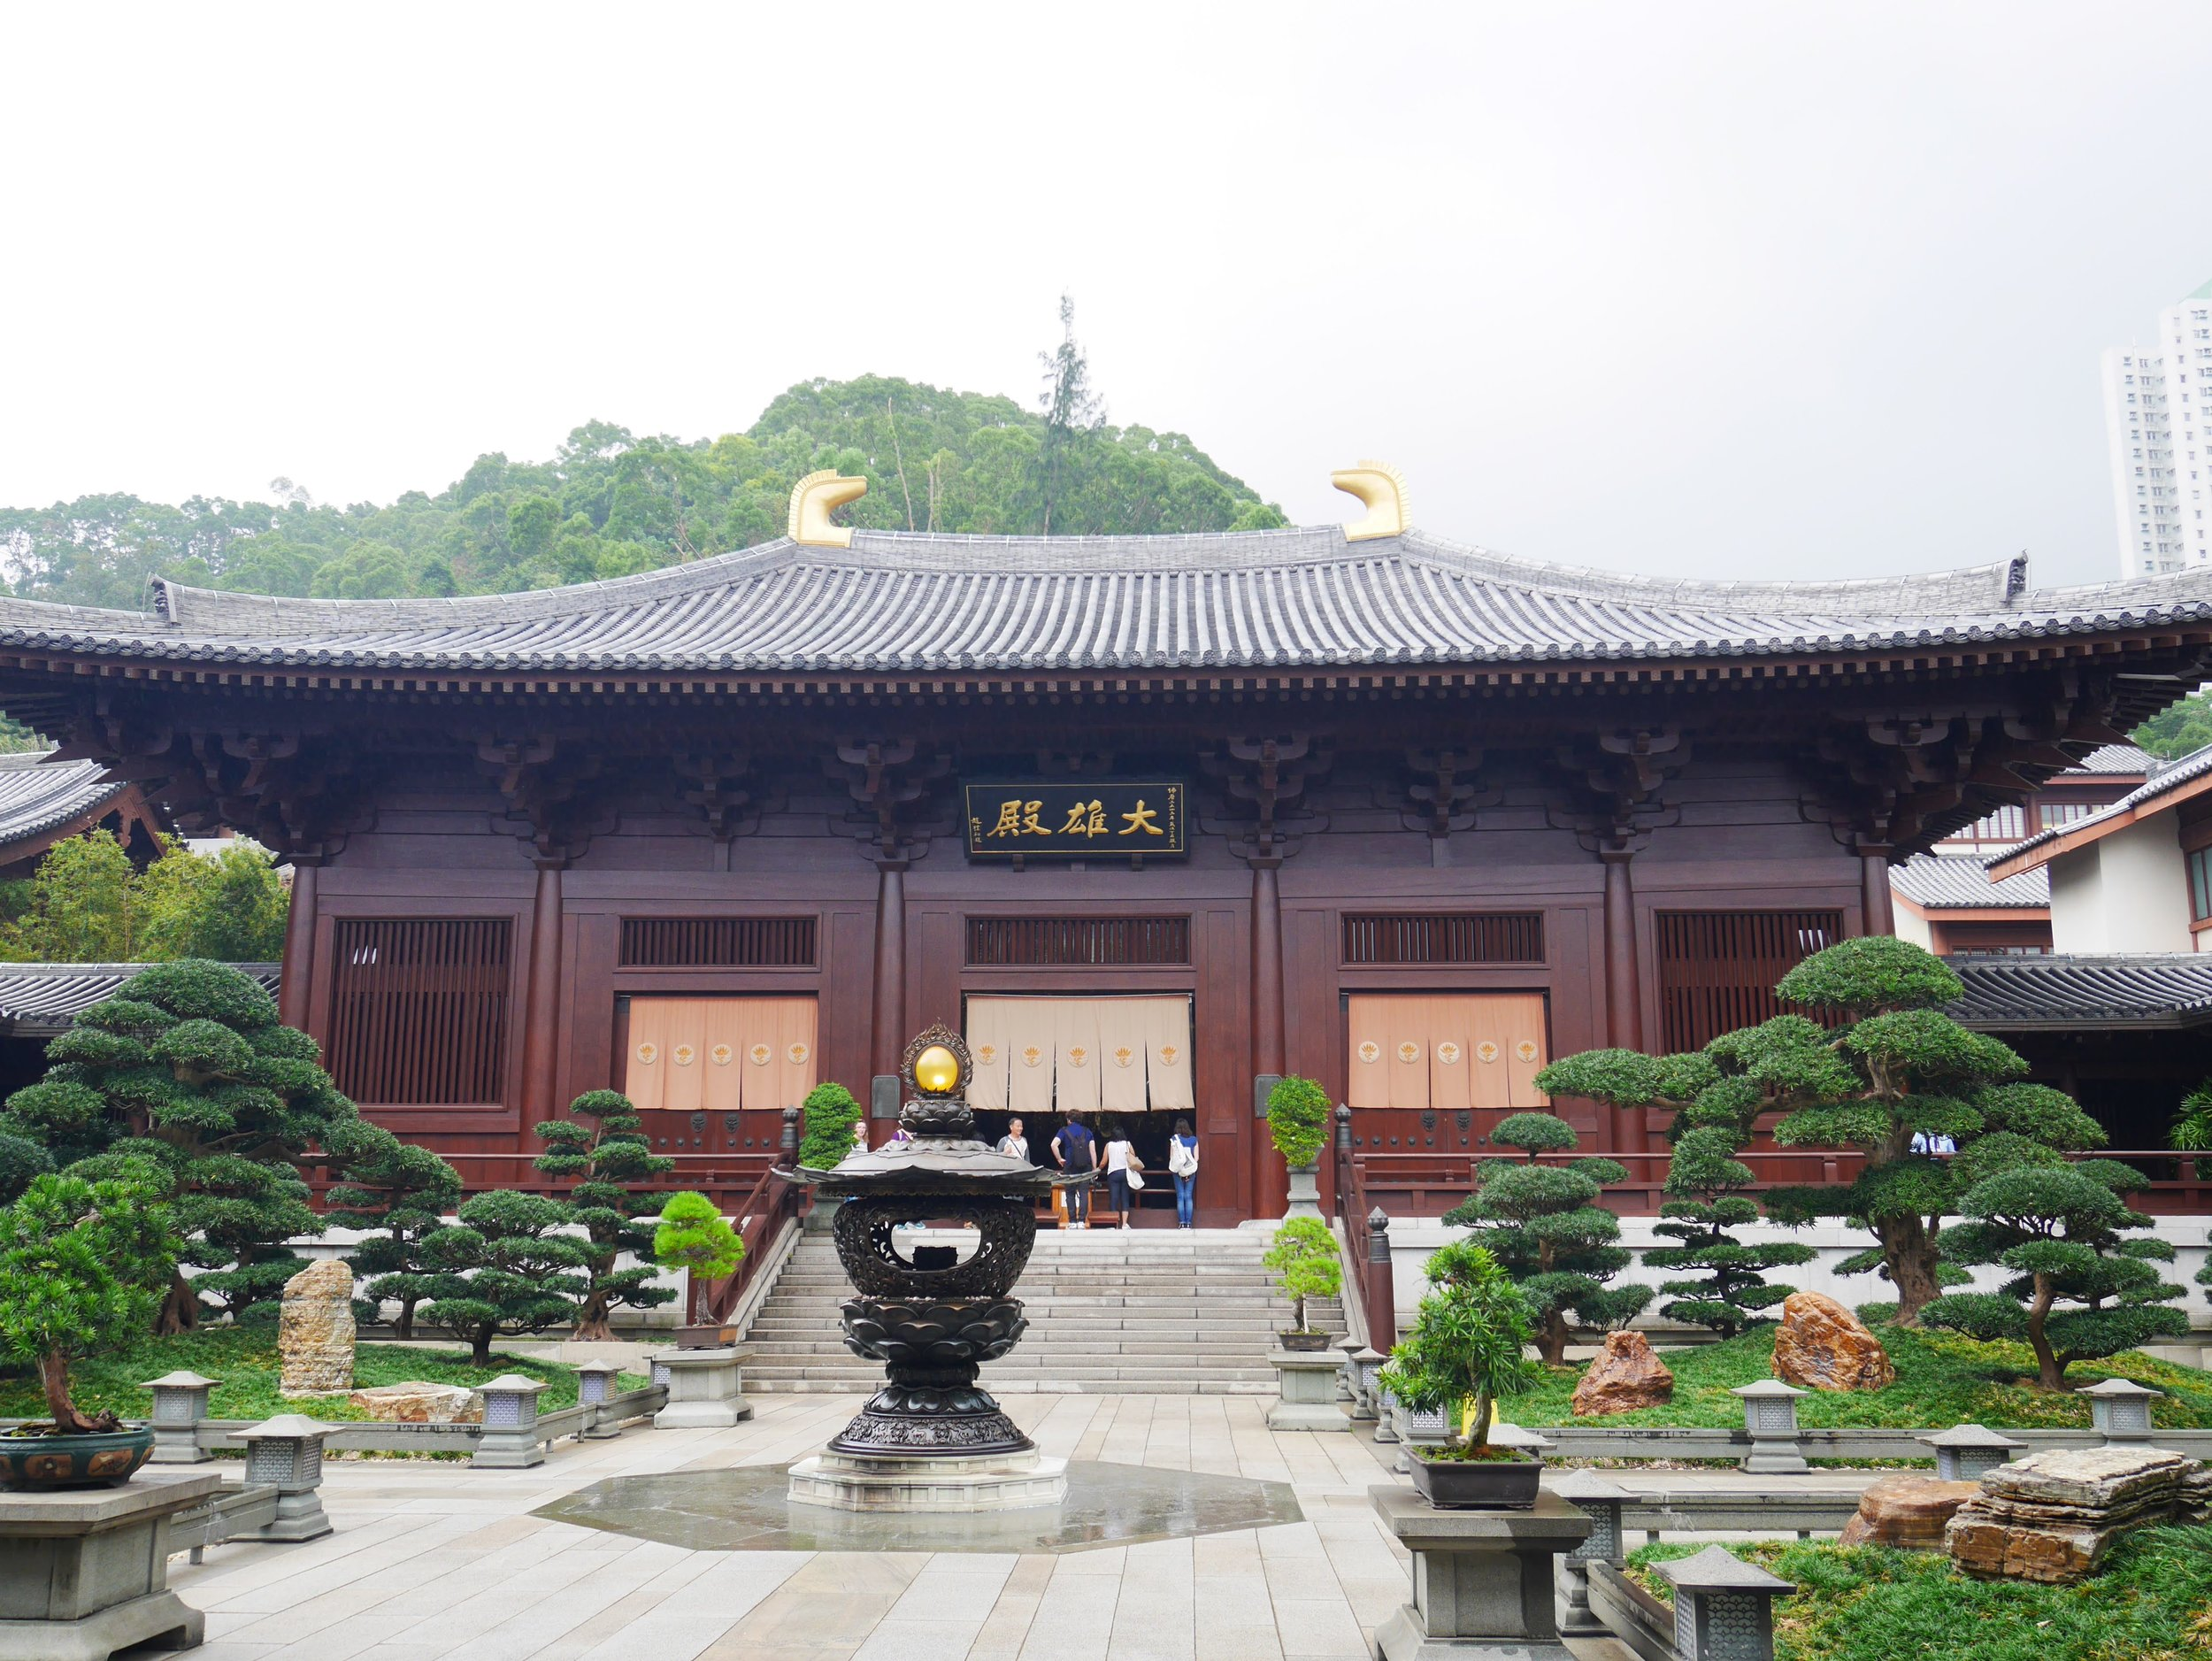 The temple halls at the Chi Lin Nunnery are made entirely of wood without the use of a single nail.